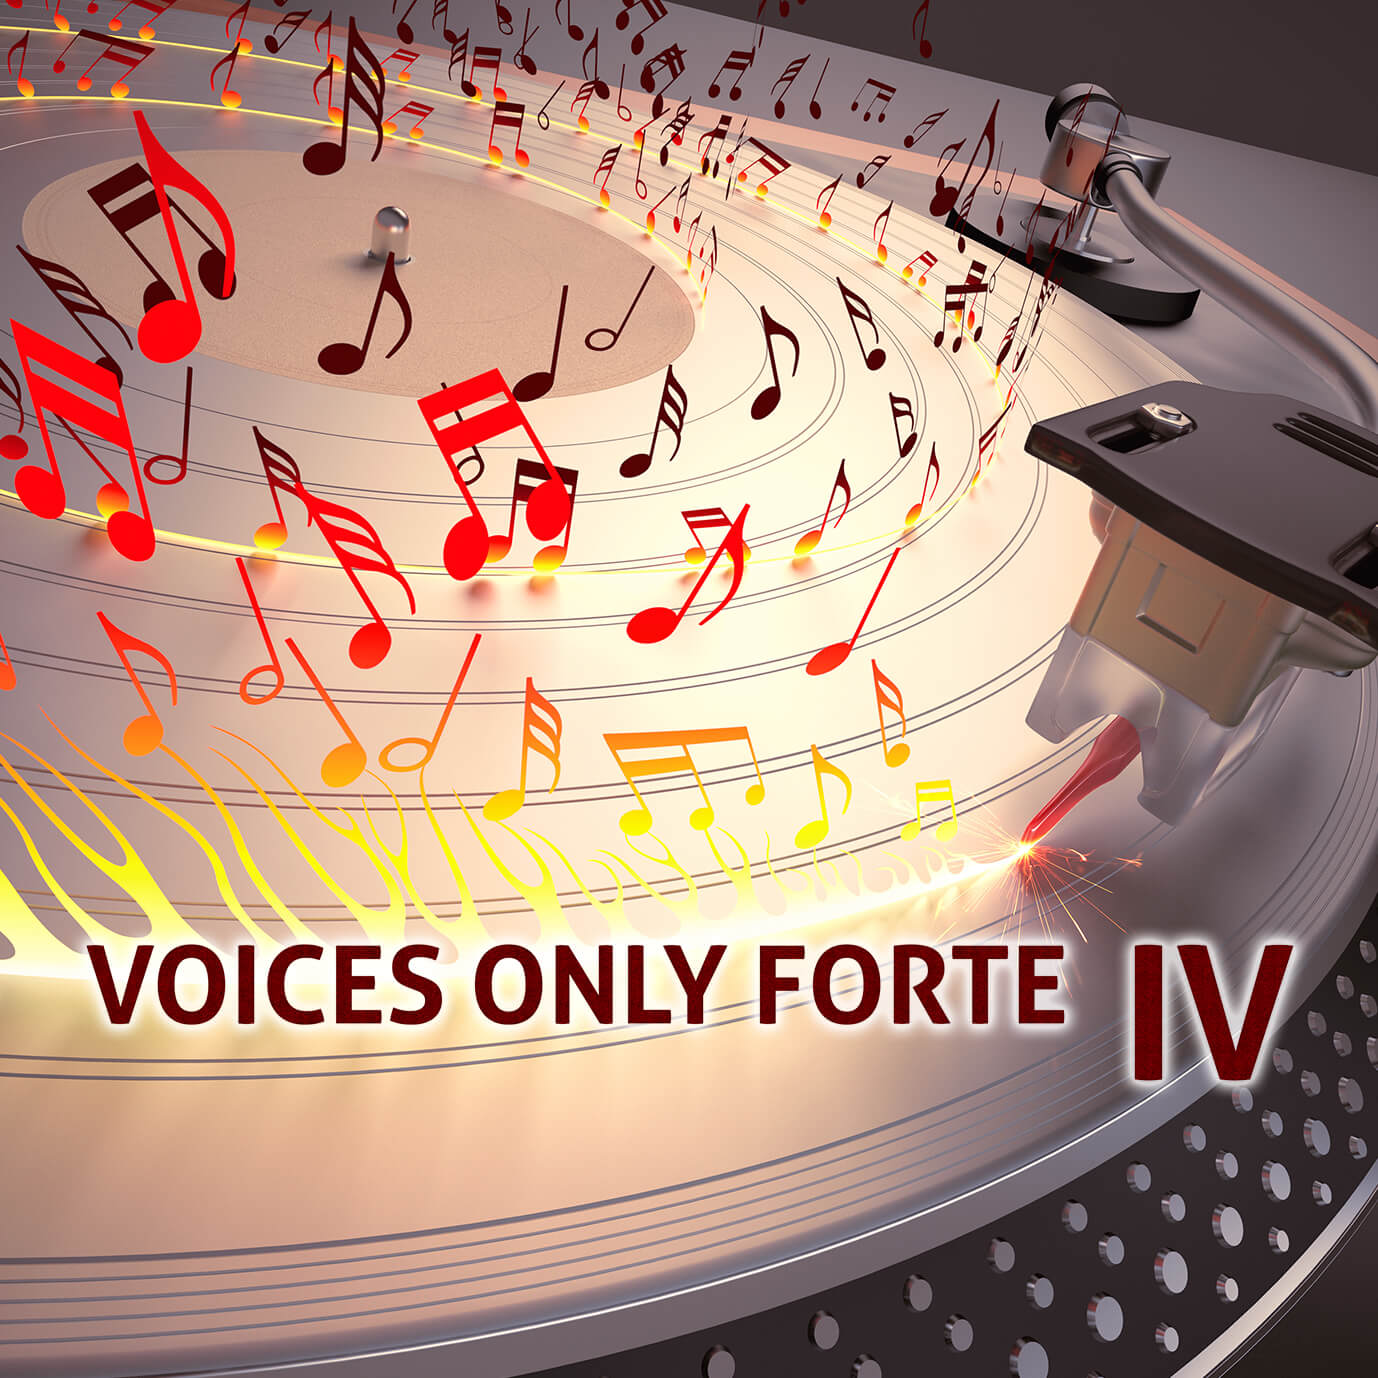 Voices Only Forte IV